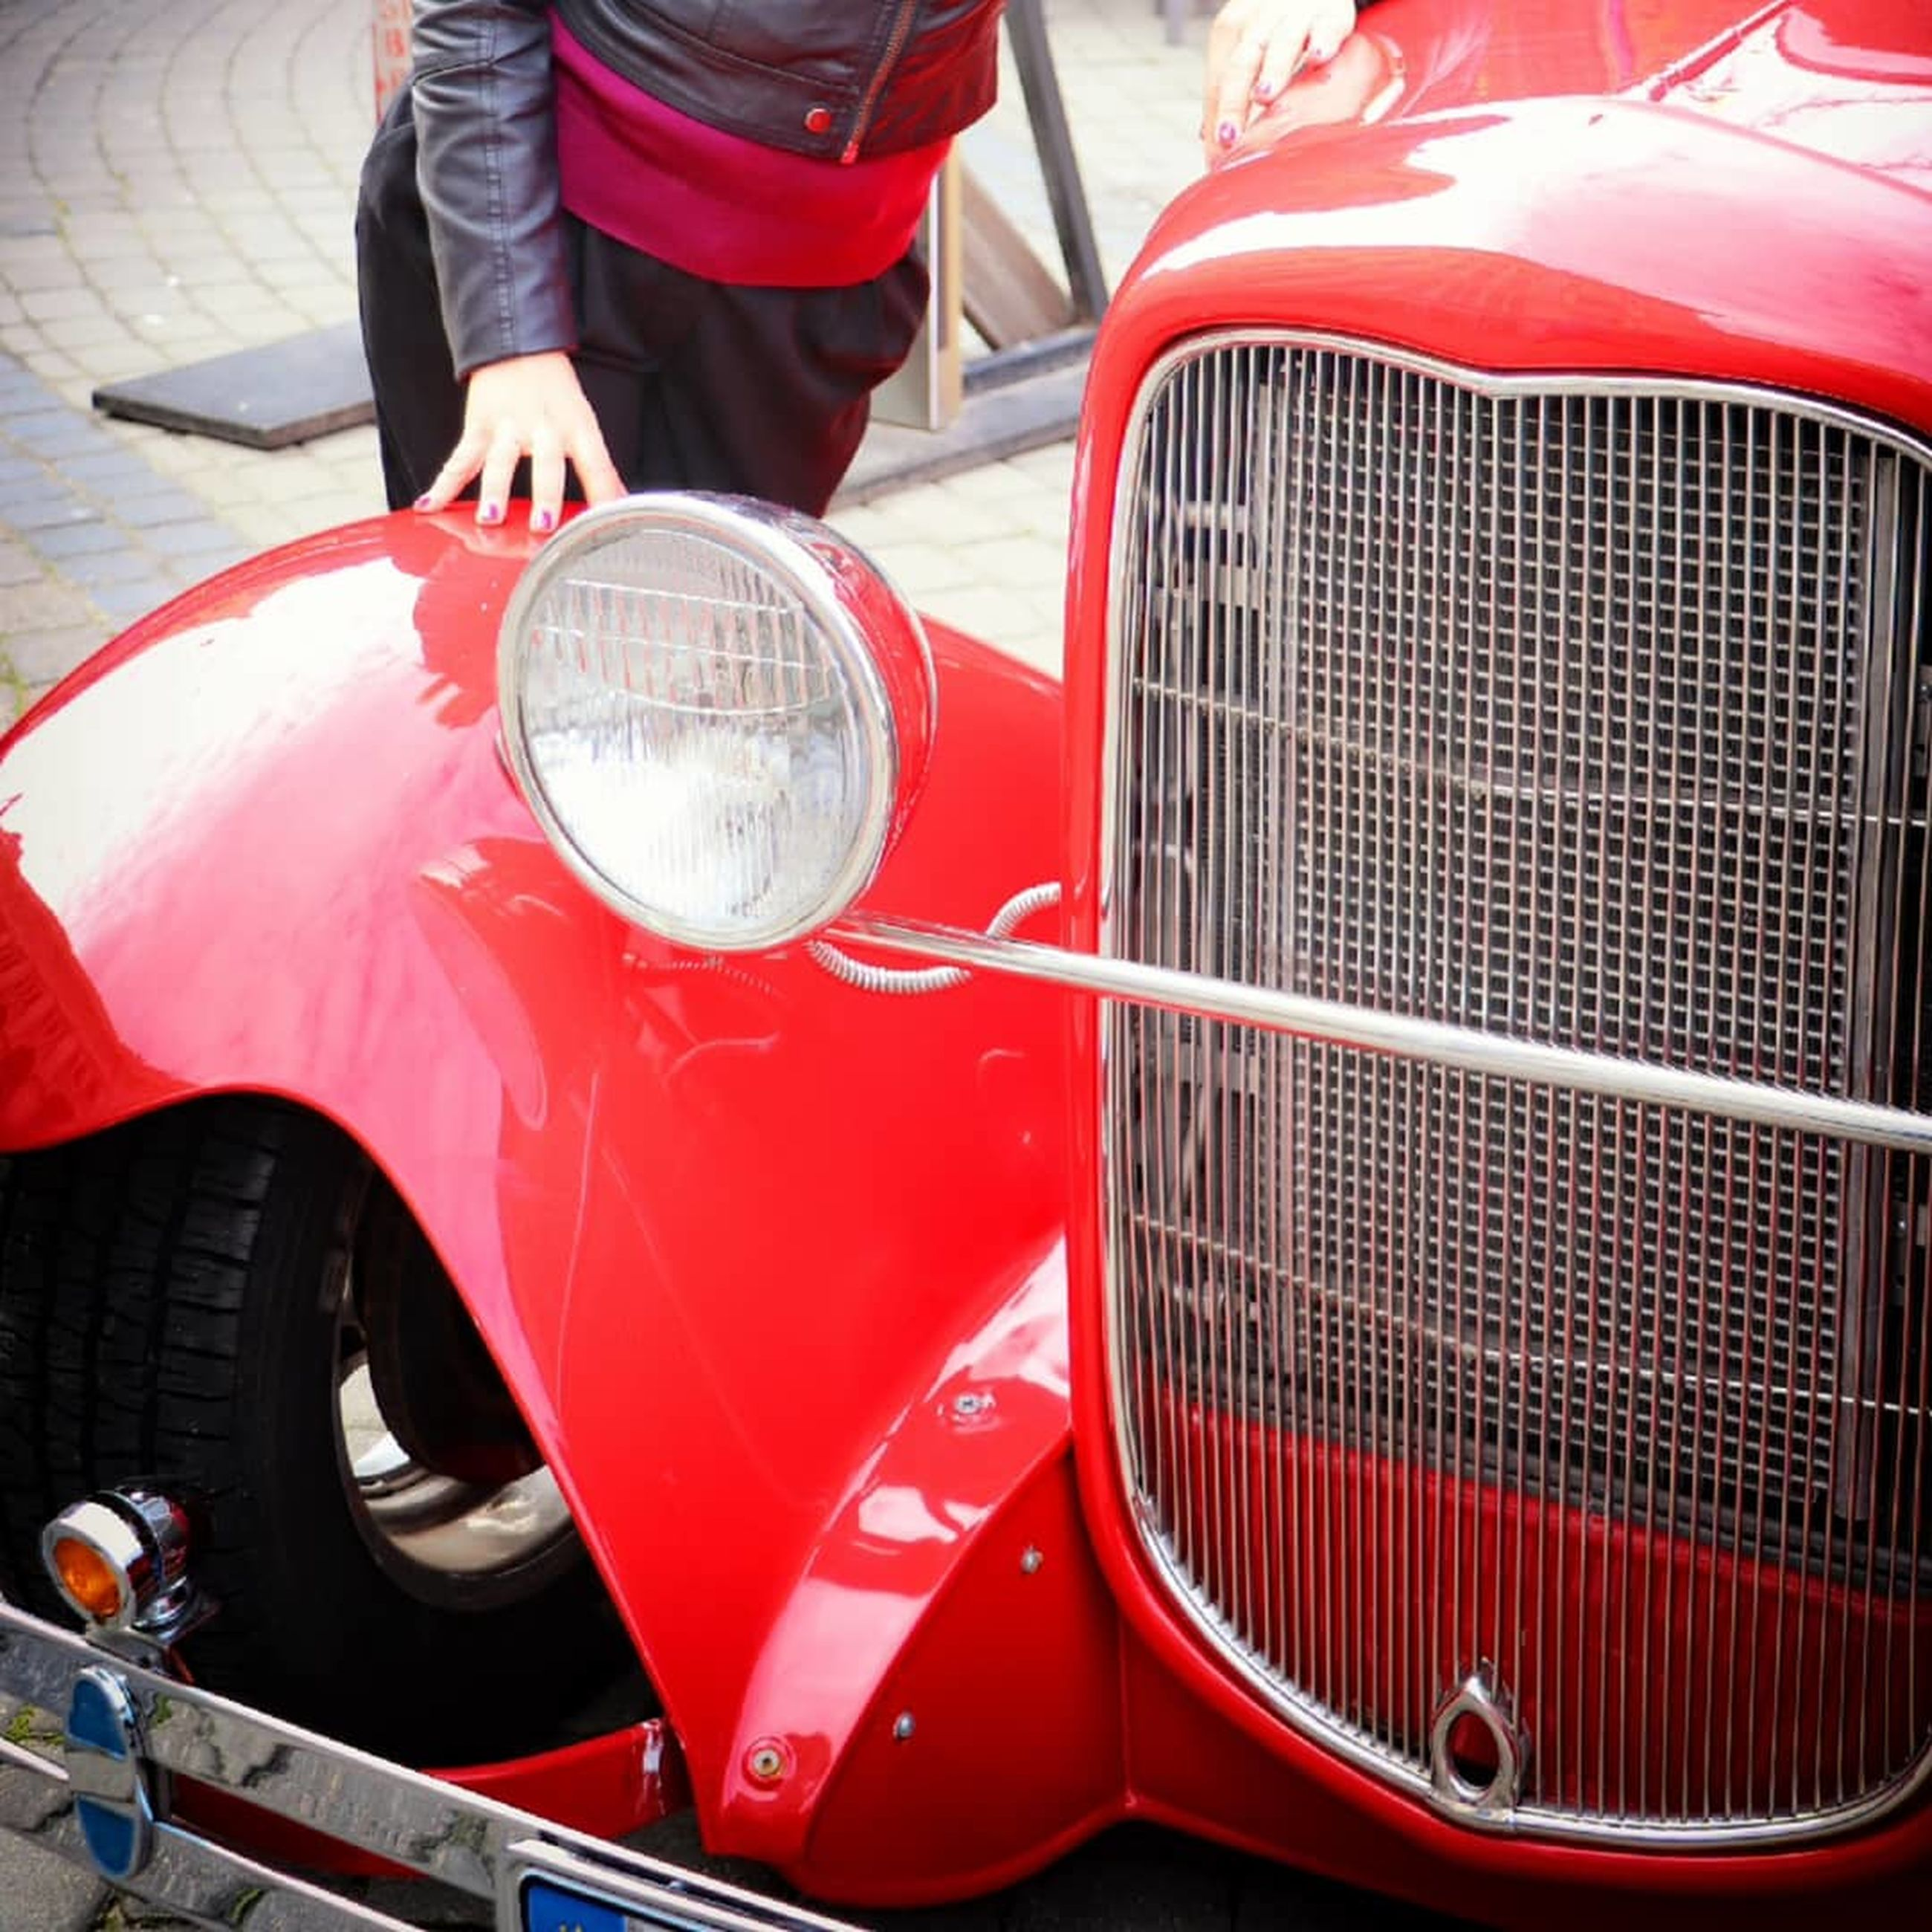 mode of transportation, car, motor vehicle, transportation, land vehicle, red, headlight, day, retro styled, outdoors, focus on foreground, one person, metal, incidental people, vintage car, street, lighting equipment, close-up, luxury, wheel